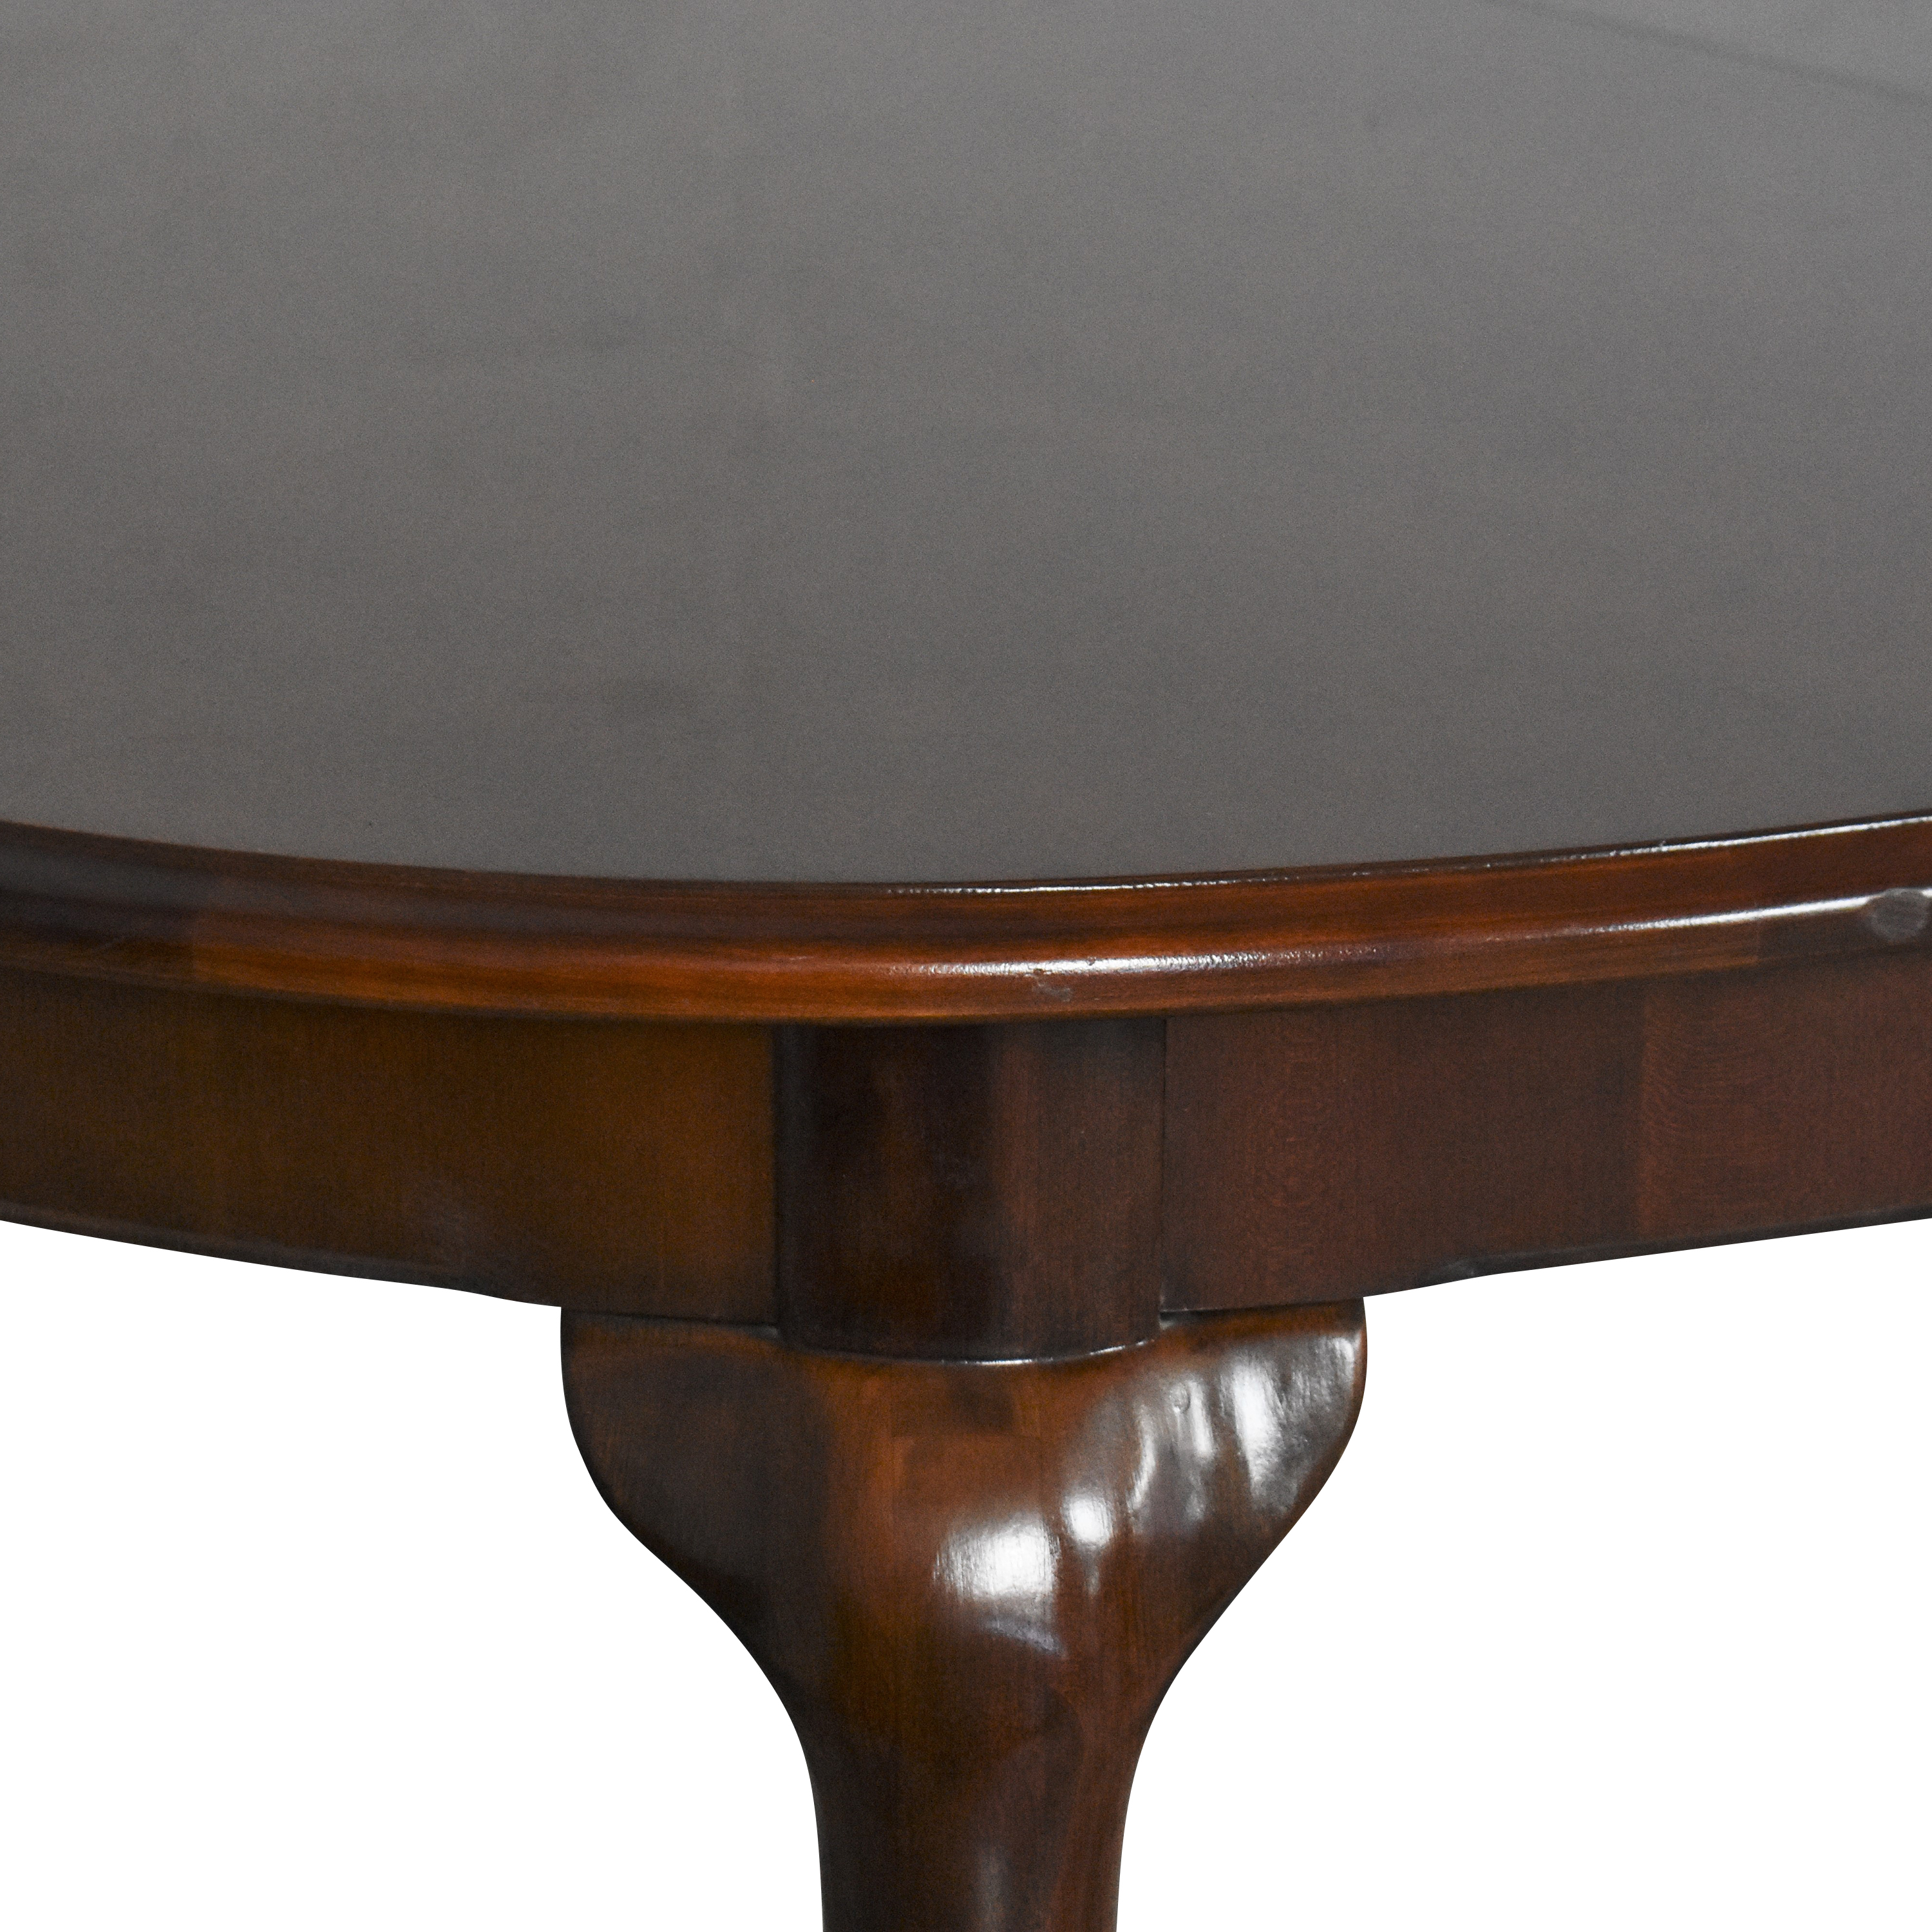 buy Thomasville Oval Extendable Dining Table Thomasville Dinner Tables